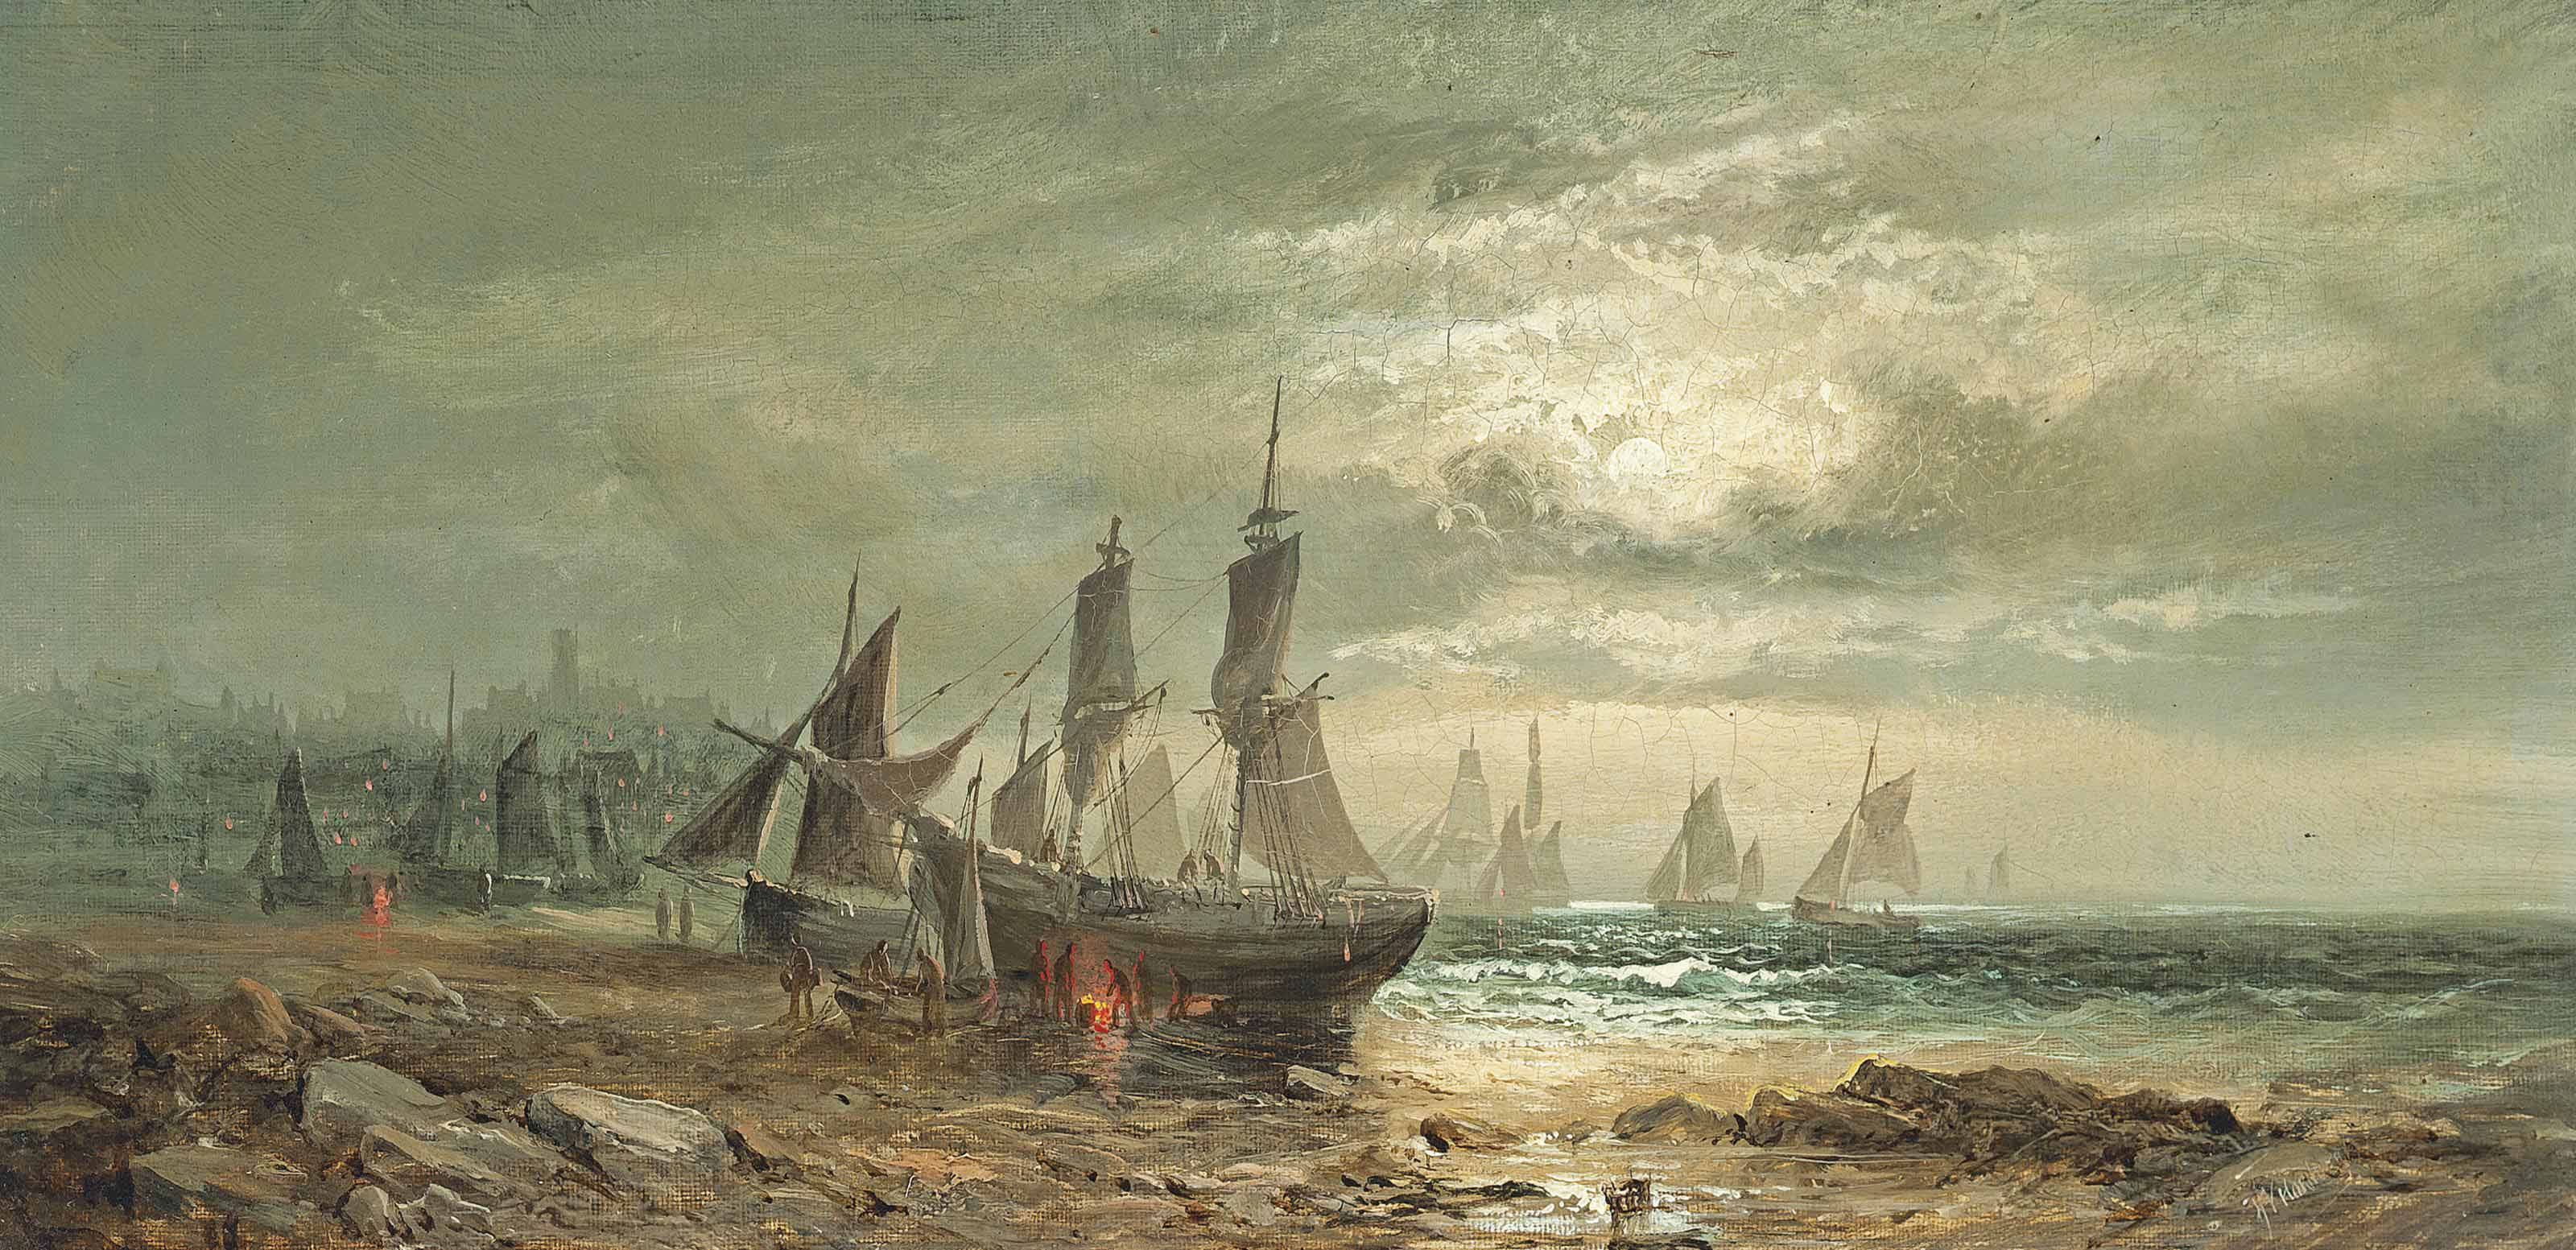 Careening the fishing boats at low tide, moonlight